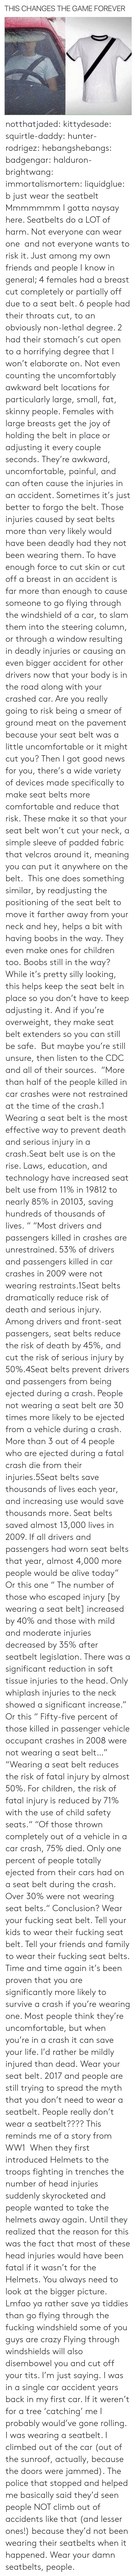 Alive, Cars, and Children: THIS CHANGES THE GAME FOREVER notthatjaded: kittydesade:  squirtle-daddy:  hunter-rodrigez:  hebangshebangs:  badgengar:  halduron-brightwang:  immortalismortem:  liquidglue:   b just wear the seatbelt   Mmmmmmm I gotta naysay here. Seatbelts do a LOT of harm. Not everyone can wear one and not everyone wants to risk it. Just among my own friends and people I know in general; 4 females had a breast cut completely or partially off due to a seat belt. 6 people had their throats cut, to an obviously non-lethal degree. 2 had their stomach's cut open to a horrifying degree that I won't elaborate on. Not even counting the uncomfortably awkward belt locations for particularly large, small, fat, skinny people. Females with large breasts get the joy of holding the belt in place or adjusting it every couple seconds. They're awkward, uncomfortable, painful, and can often cause the injuries in an accident. Sometimes it's just better to forgo the belt.  Those injuries caused by seat belts more than very likely would have been deadly had they not been wearing them. To have enough force to cut skin or cut off a breast in an accident is far more than enough to cause someone to go flying through the windshield of a car, to slam them into the steering column, or through a window resulting in deadly injuries or causing an even bigger accident for other drivers now that your body is in the road along with your crashed car. Are you really going to risk being a smear of ground meat on the pavement because your seat belt was a little uncomfortable or it might cut you? Then I got good news for you, there's a wide variety of devices made specifically to make seat belts more comfortable and reduce that risk. These make it so that your seat belt won't cut your neck, a simple sleeve of padded fabric that velcros around it, meaning you can put it anywhere on the belt. This one does something similar, by readjusting the positioning of the seat belt to move it farther aw